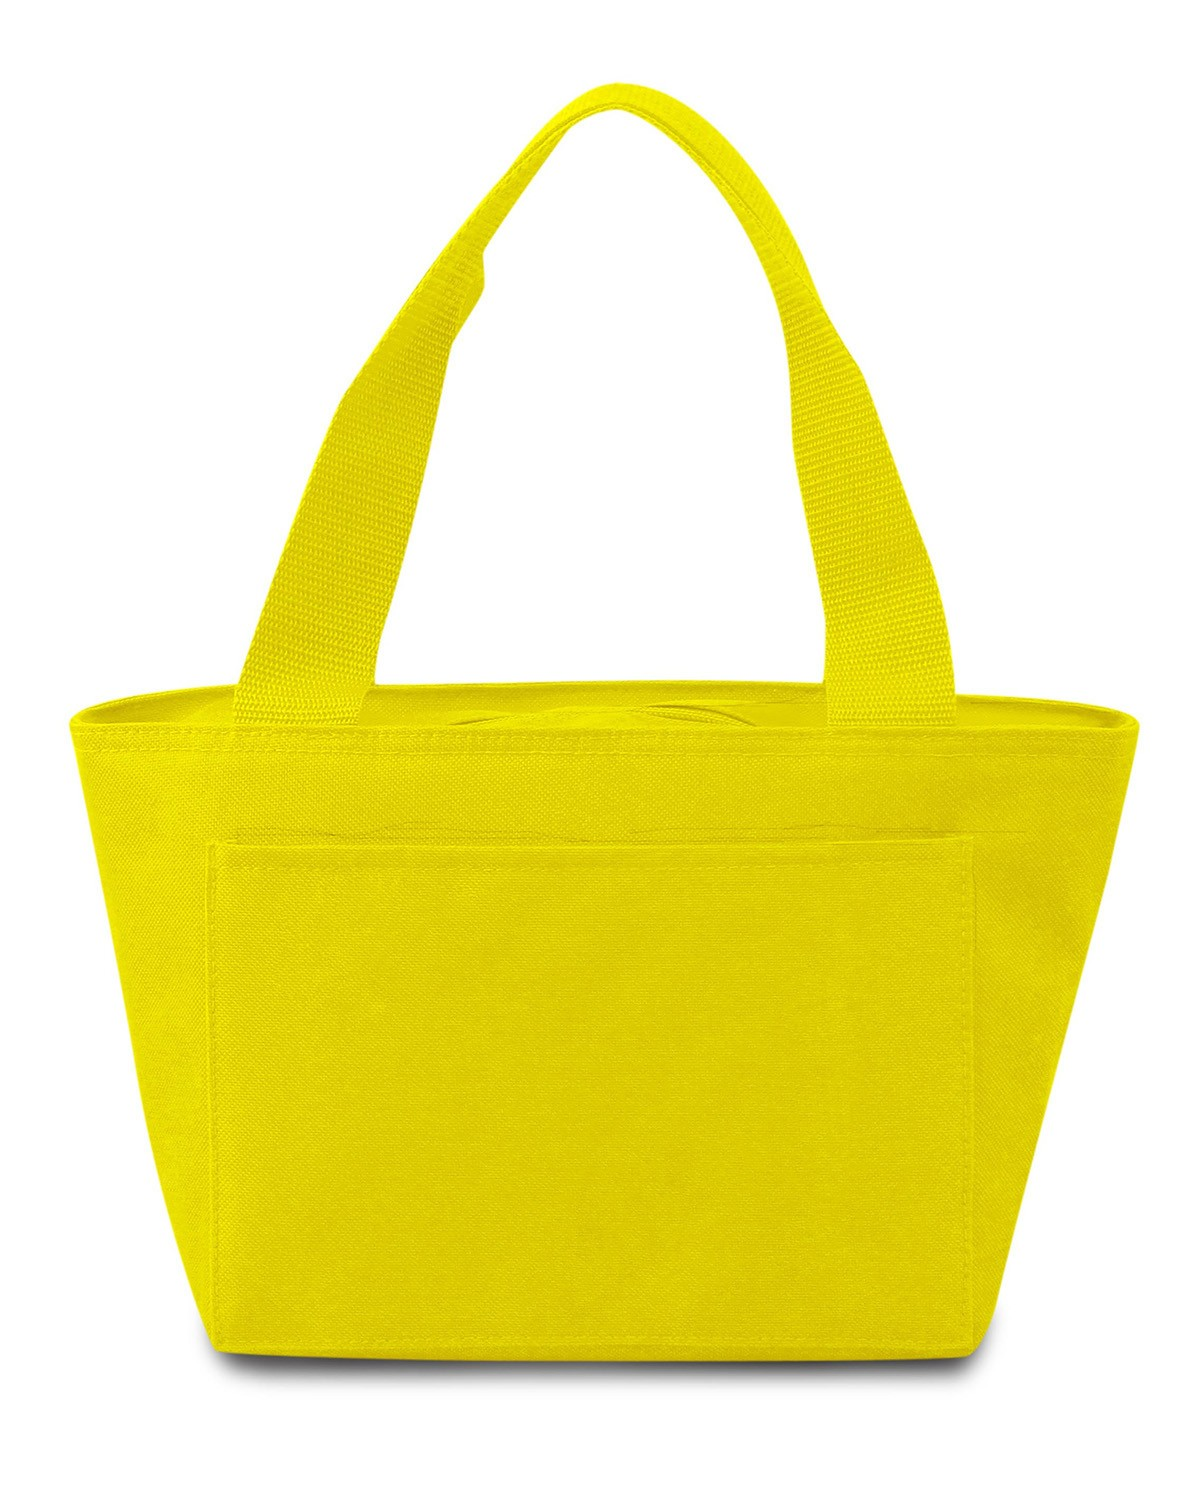 8808 Liberty Bags BRIGHT YELLOW